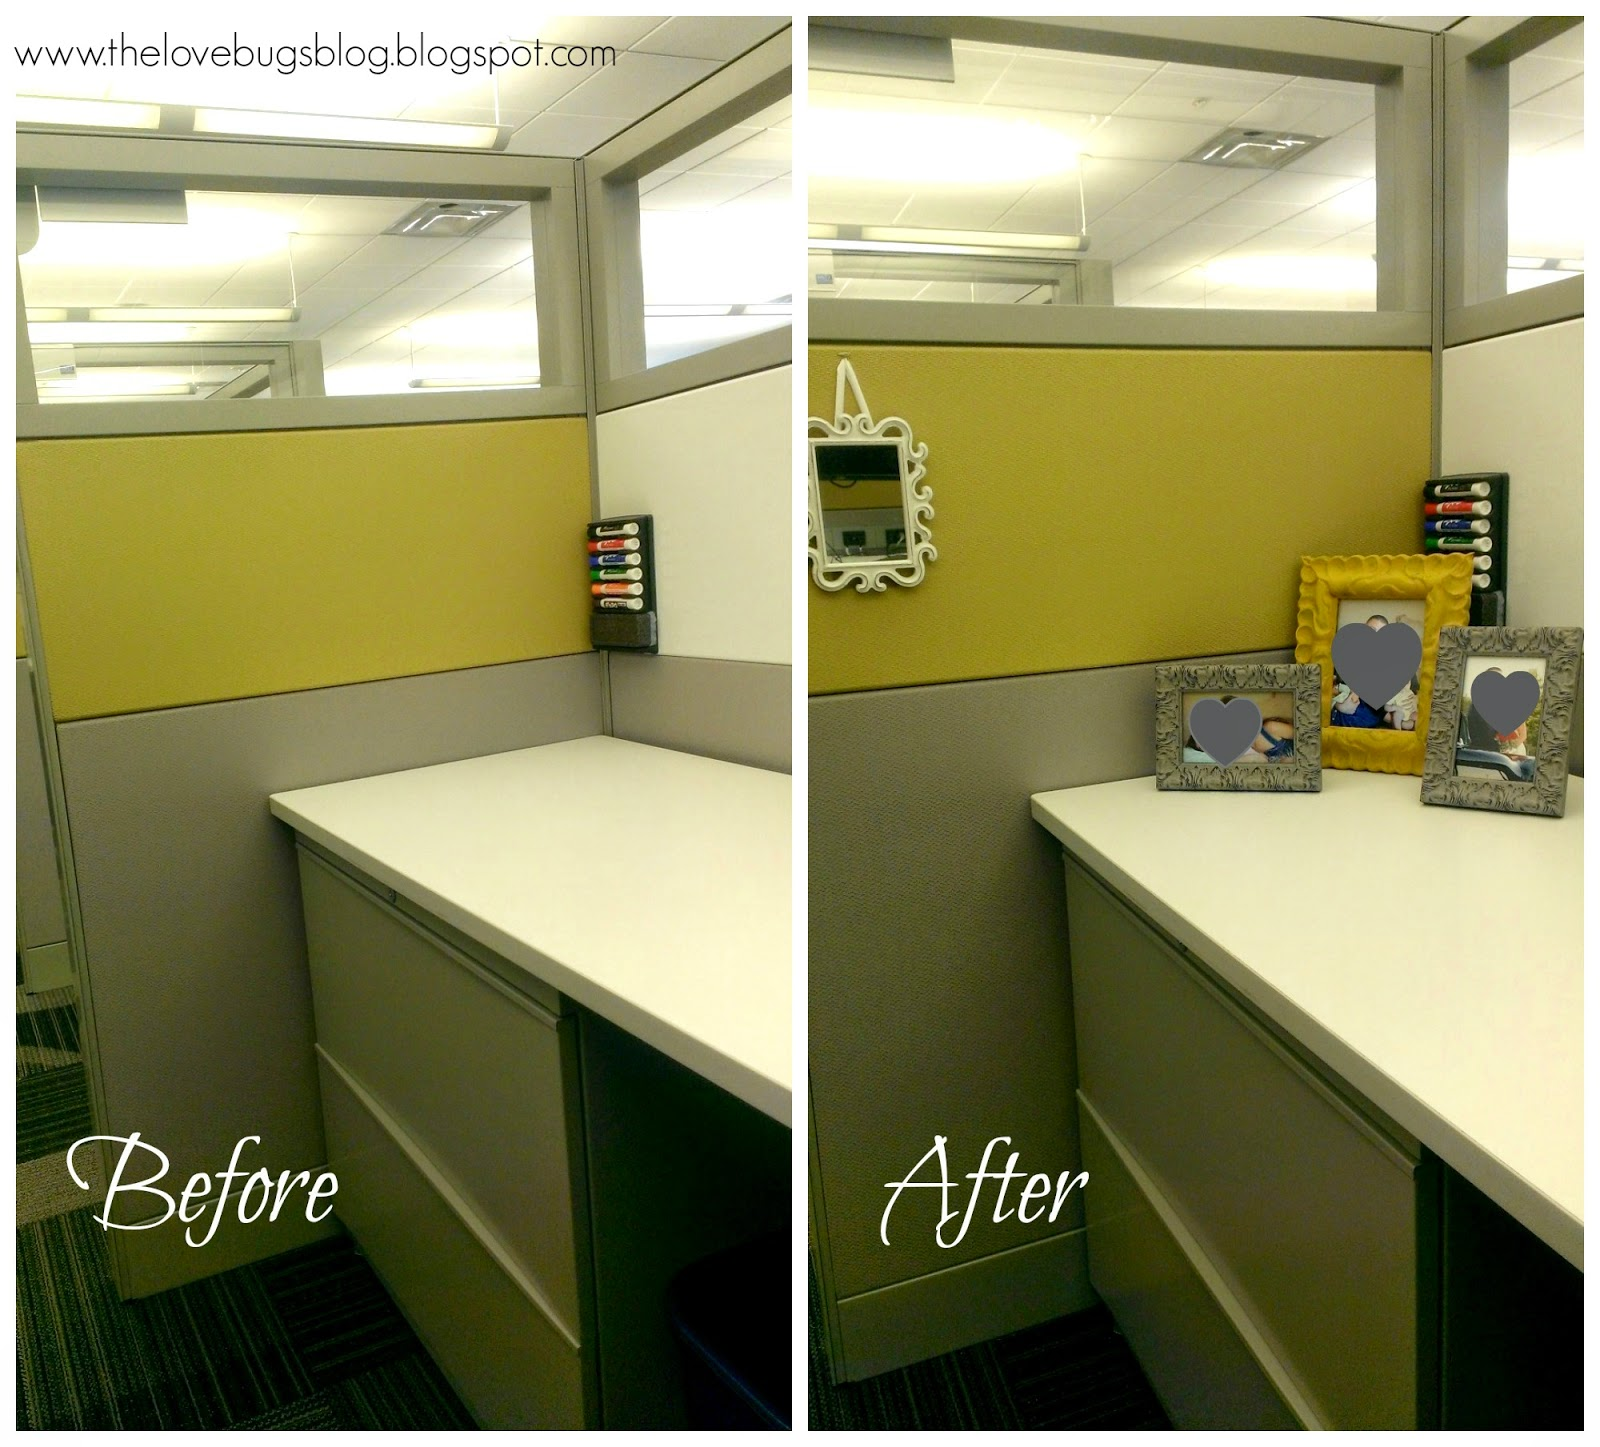 Work Cubicle Makeover - The Lovebugs Blog